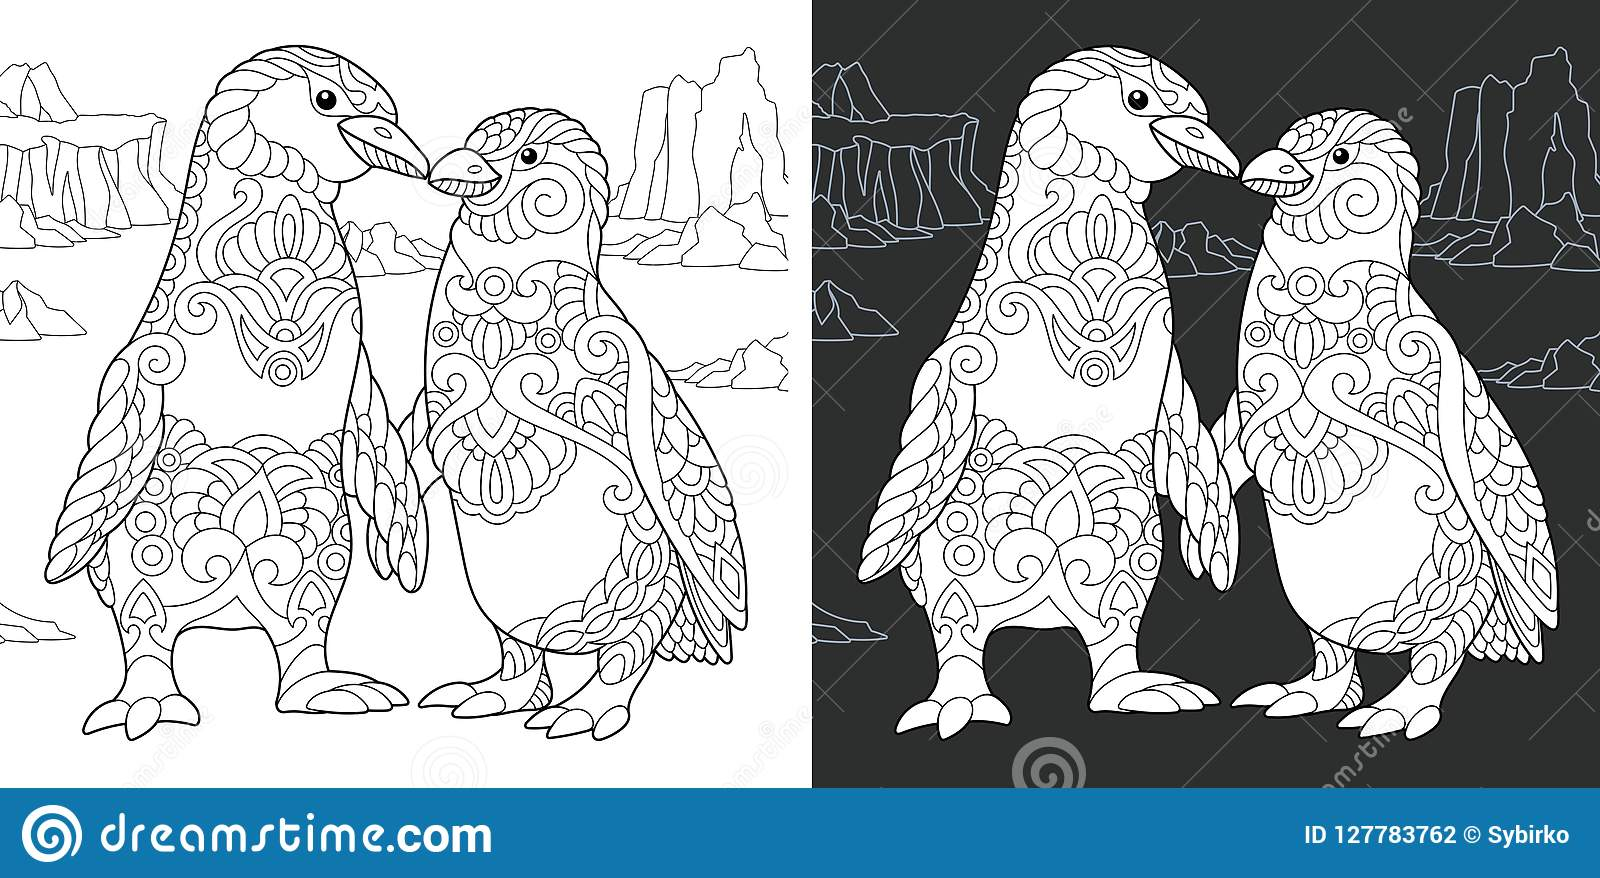 Coloring book page with penguin couple